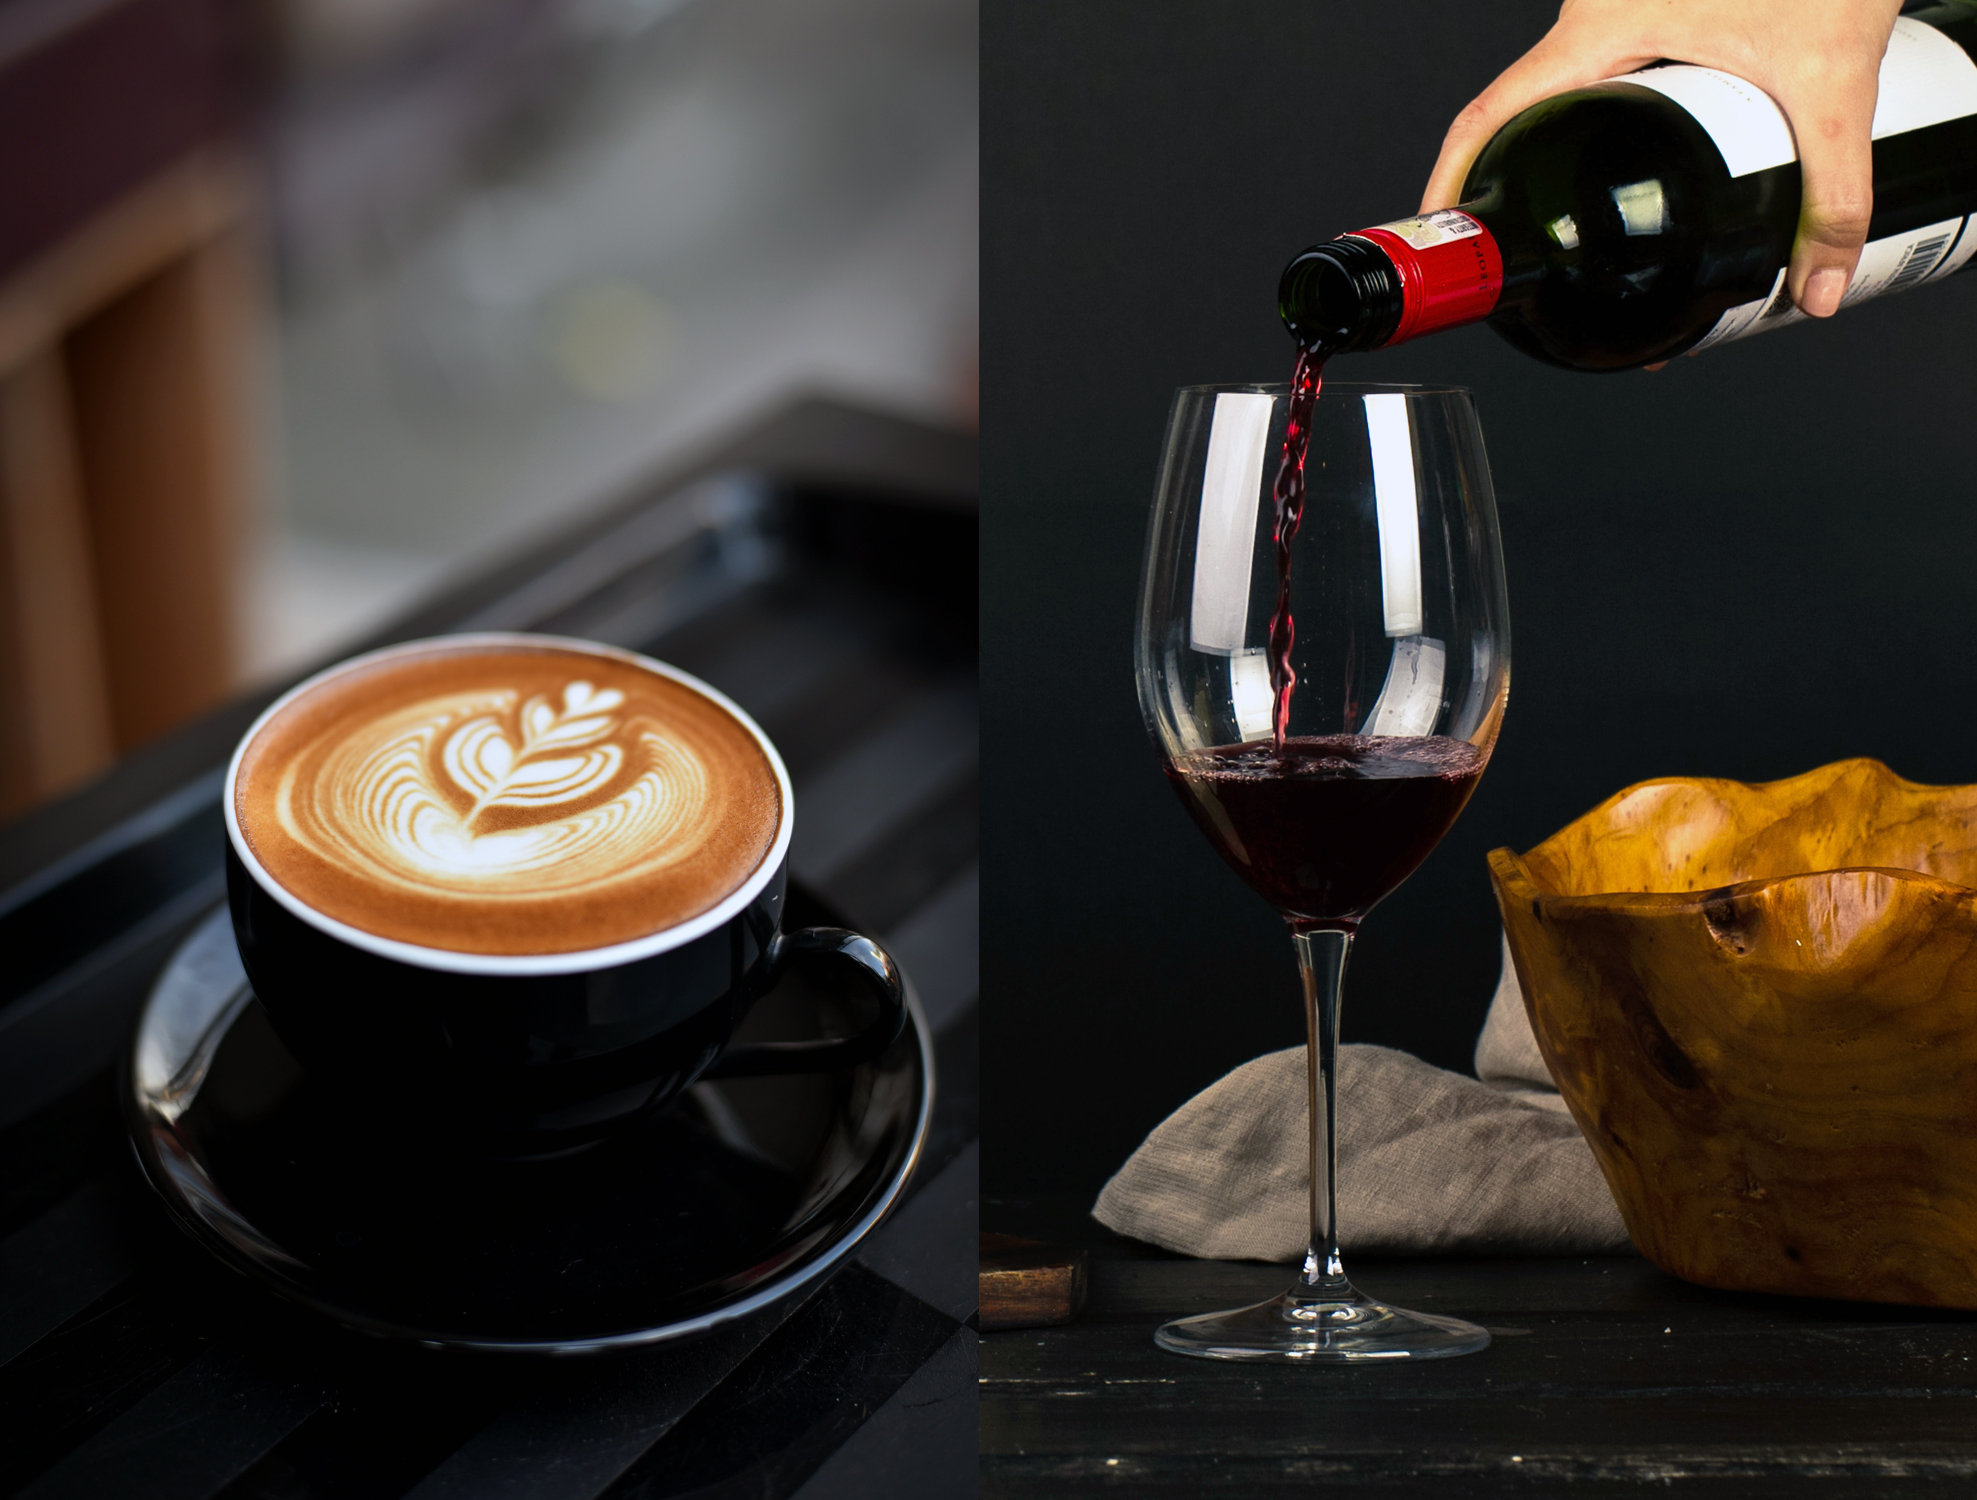 The Club Bar - The Club Bar is open to Members from 10.30am to 11pm, offering wine, beer and a wide range of whiskies from all regions of Scotland, as well as serving beautiful espresso-based coffees.